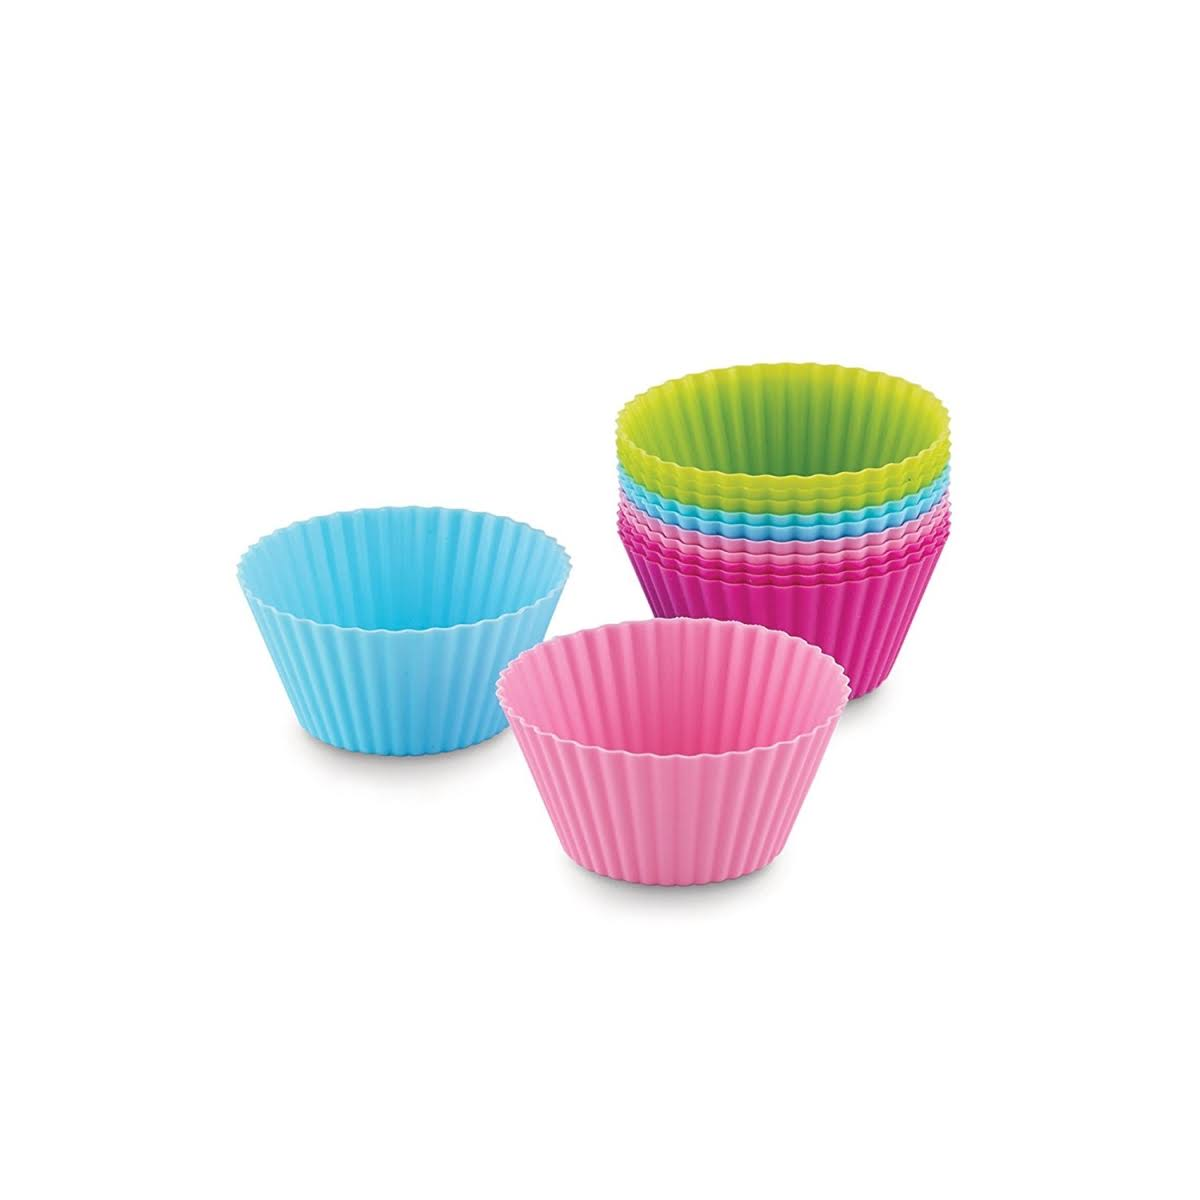 Bakelicious Silicone Bake Cups Standard Set - 12pcs